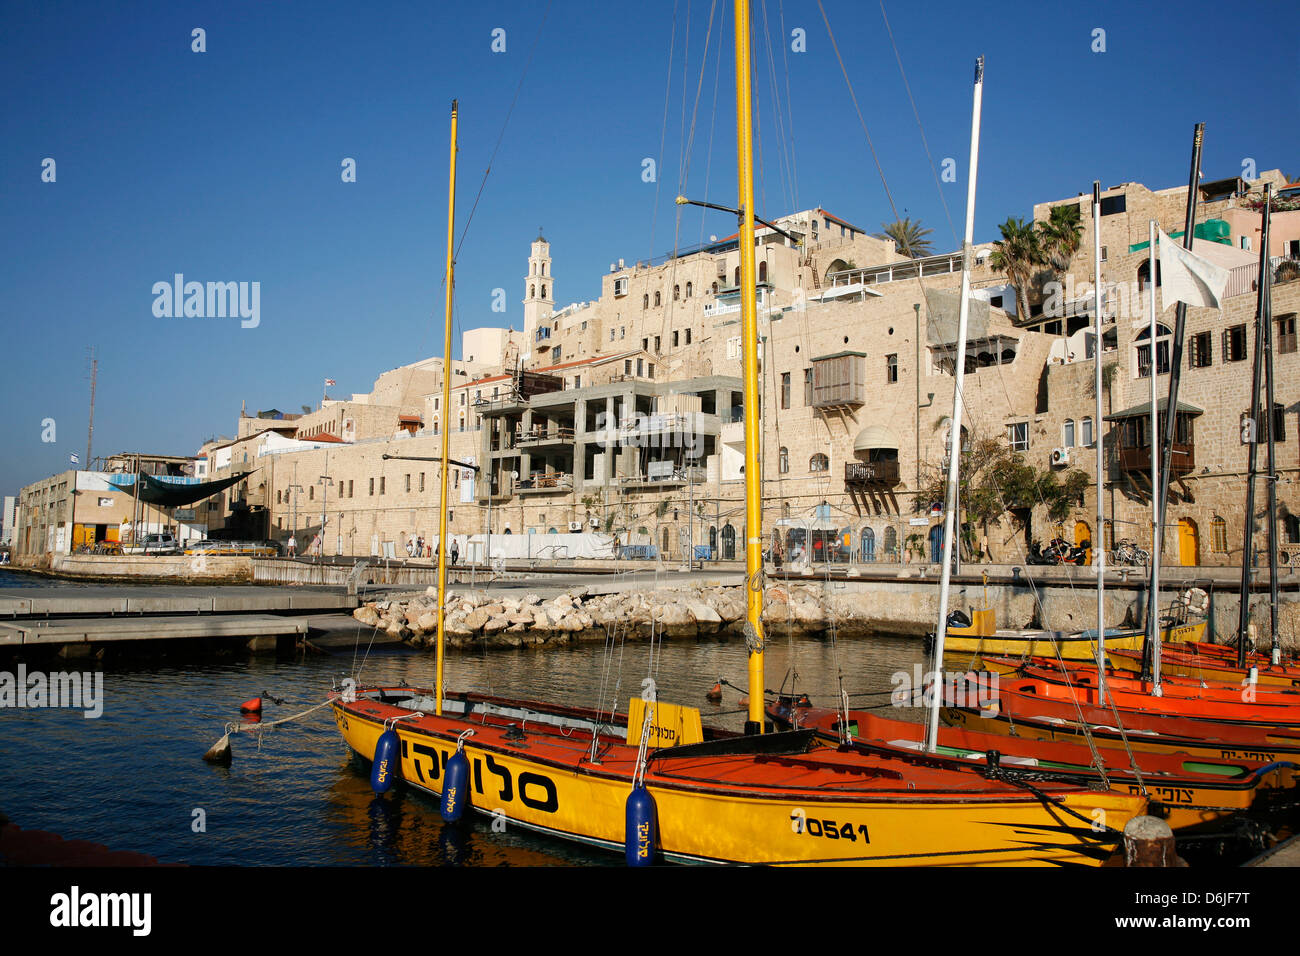 View over the port and Old Jaffa, Tel Aviv, Israel, Middle East - Stock Image